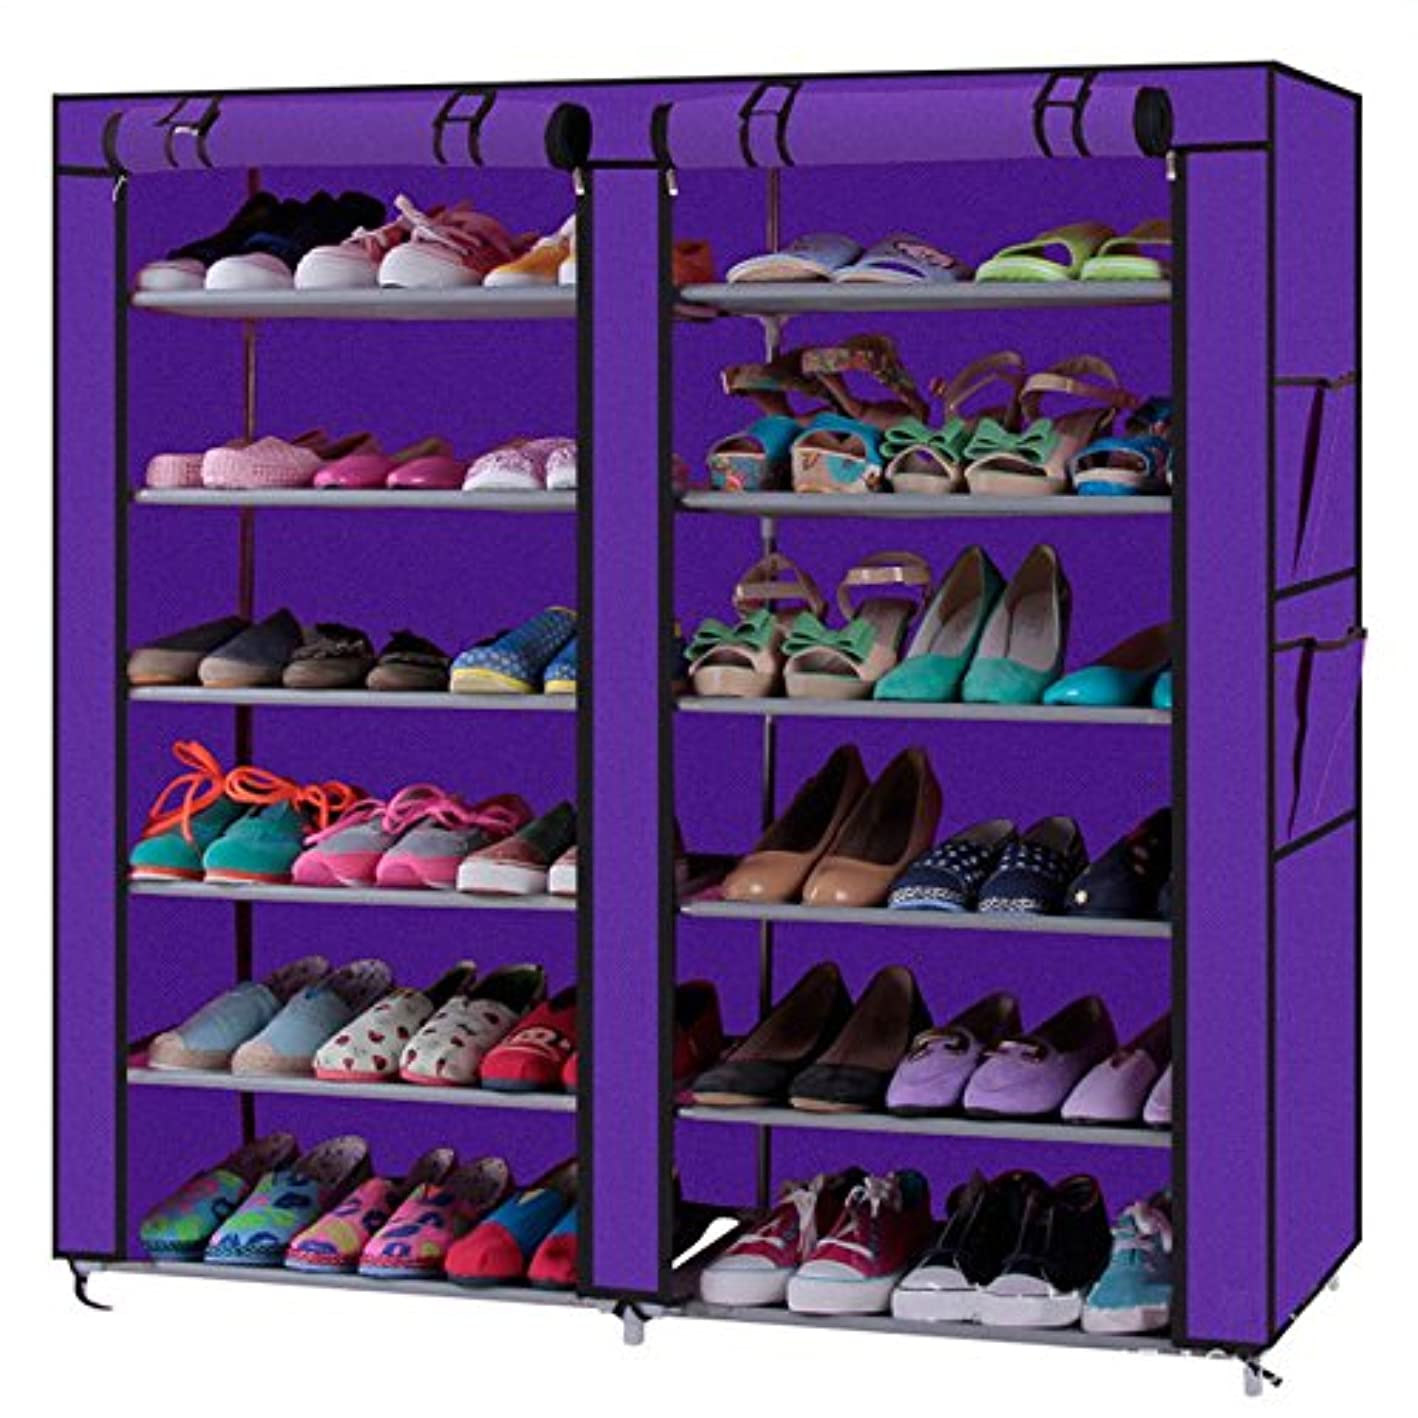 KepooMan Double Rows 12 Lattices Shoe Rack with Dustproof Cover Shoe Storage Organizer Cabinet Shoe Shelf Tower,Non-Woven Fabric Cover (Purple)